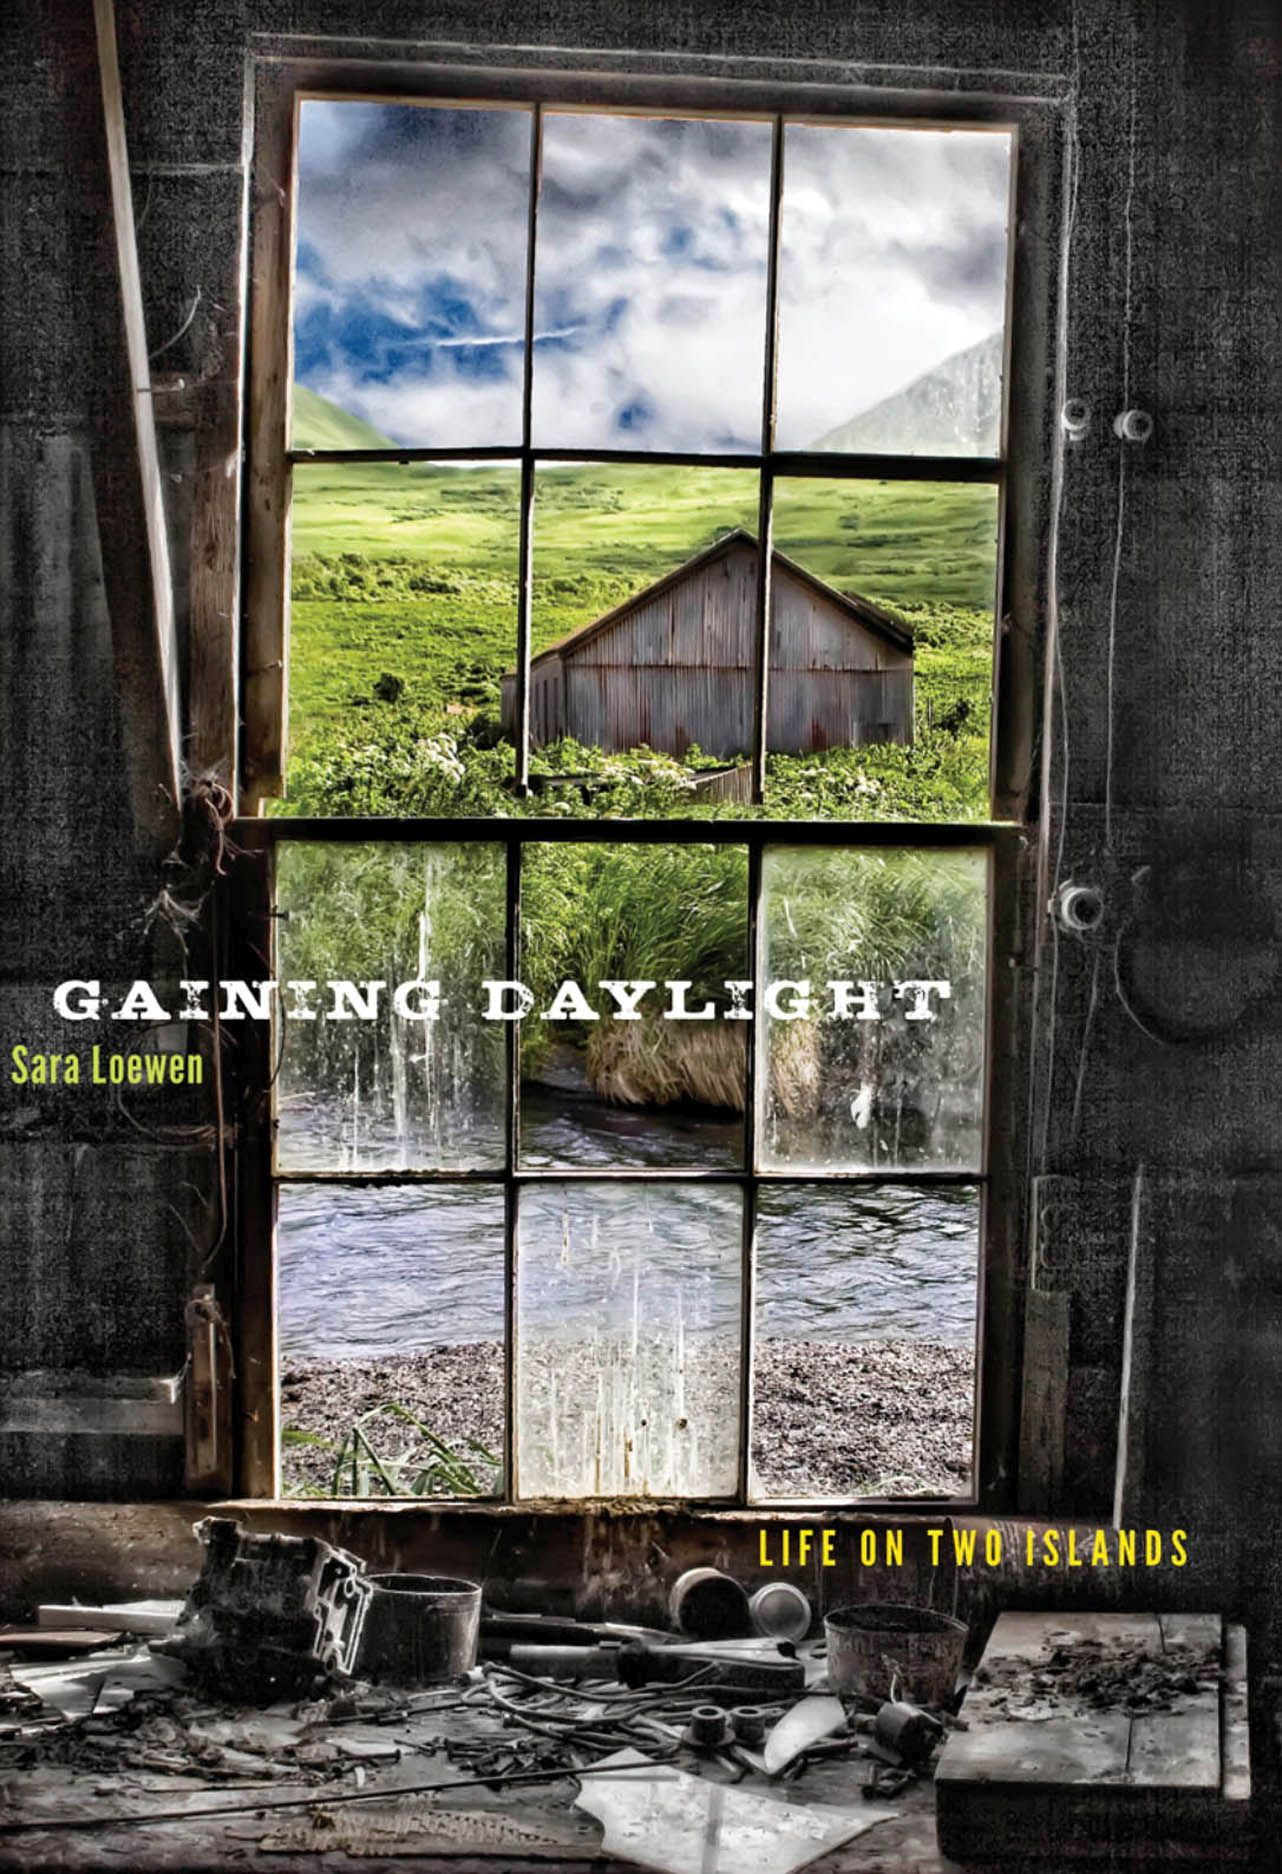 Gaining Daylight: Life on Two Islands